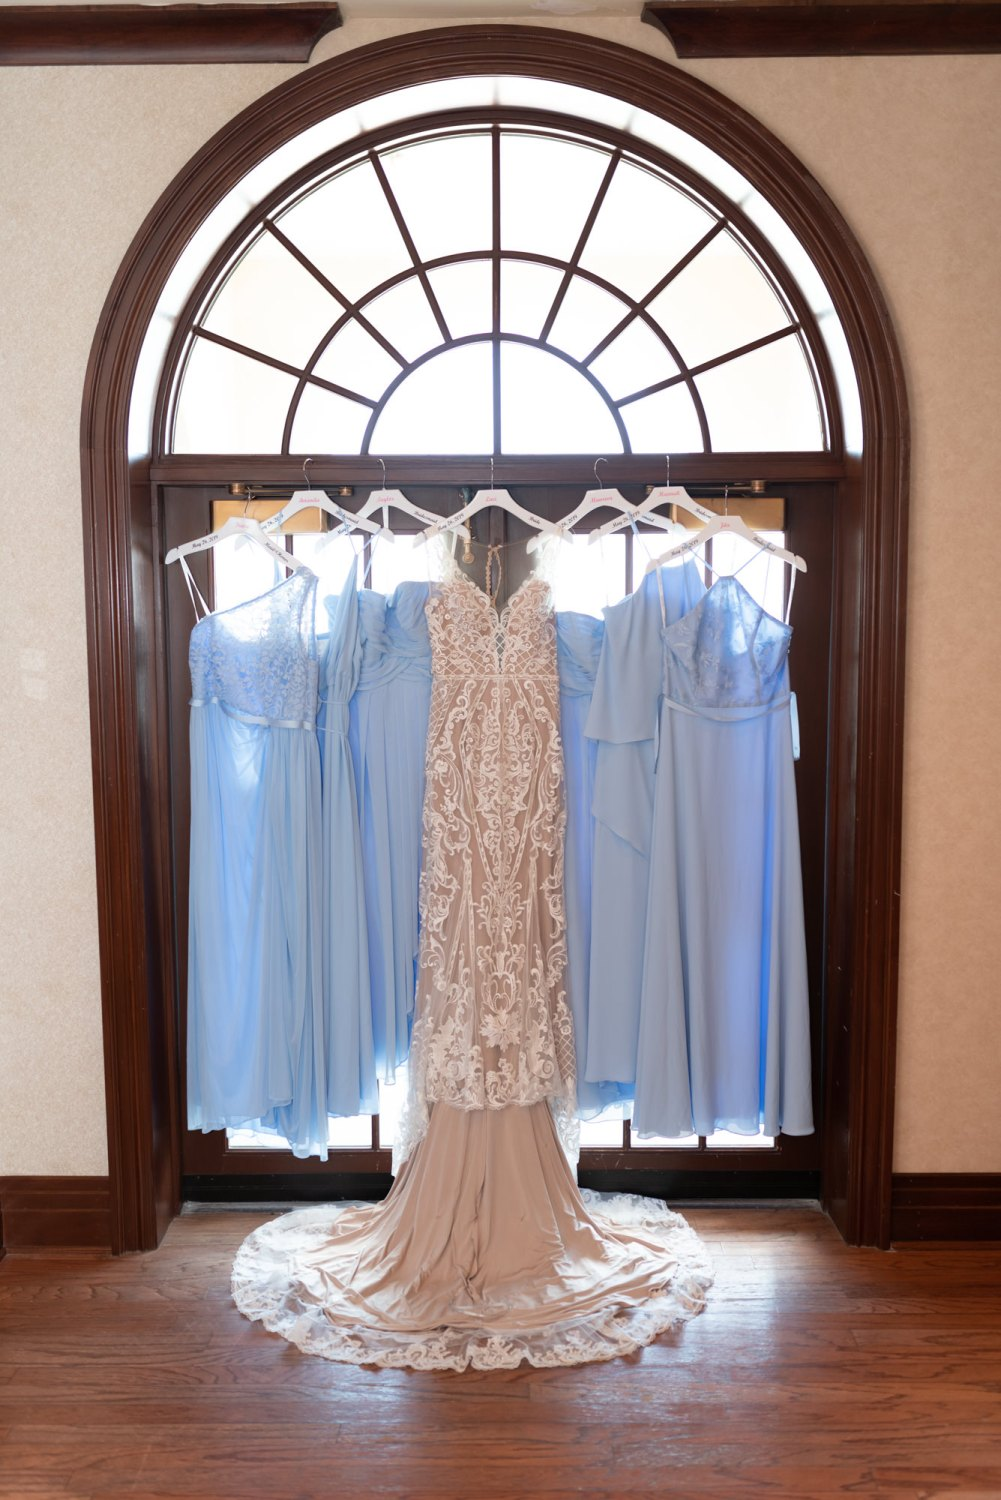 Bride and bridesmaids dressing hanging in windowlight - Grande Dunes Ocean Club - Myrtle Beach